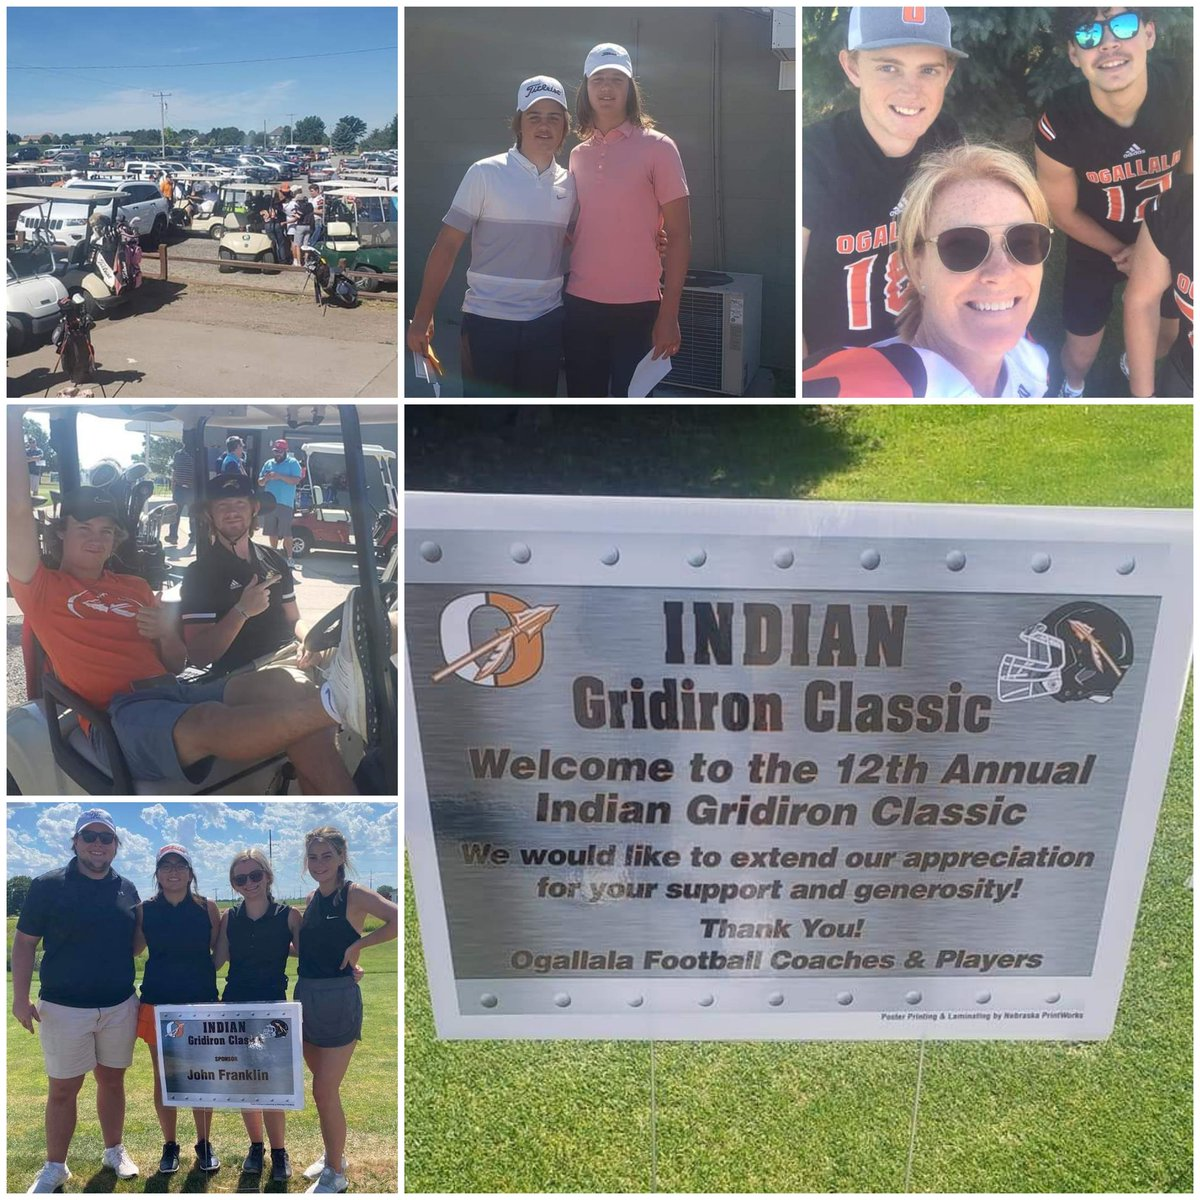 Thank you Ogallala Community & everyone that helped make the Indian Gridiron Classic a huge success!  A great day celebrating Ogallala Football!  38 teams, record setting sponsors & donations! Thank you for your support!! #PrairiePlaymakers  #AllFor1  #winEVERYTHING  #Family https://t.co/OaJJSU5S7D